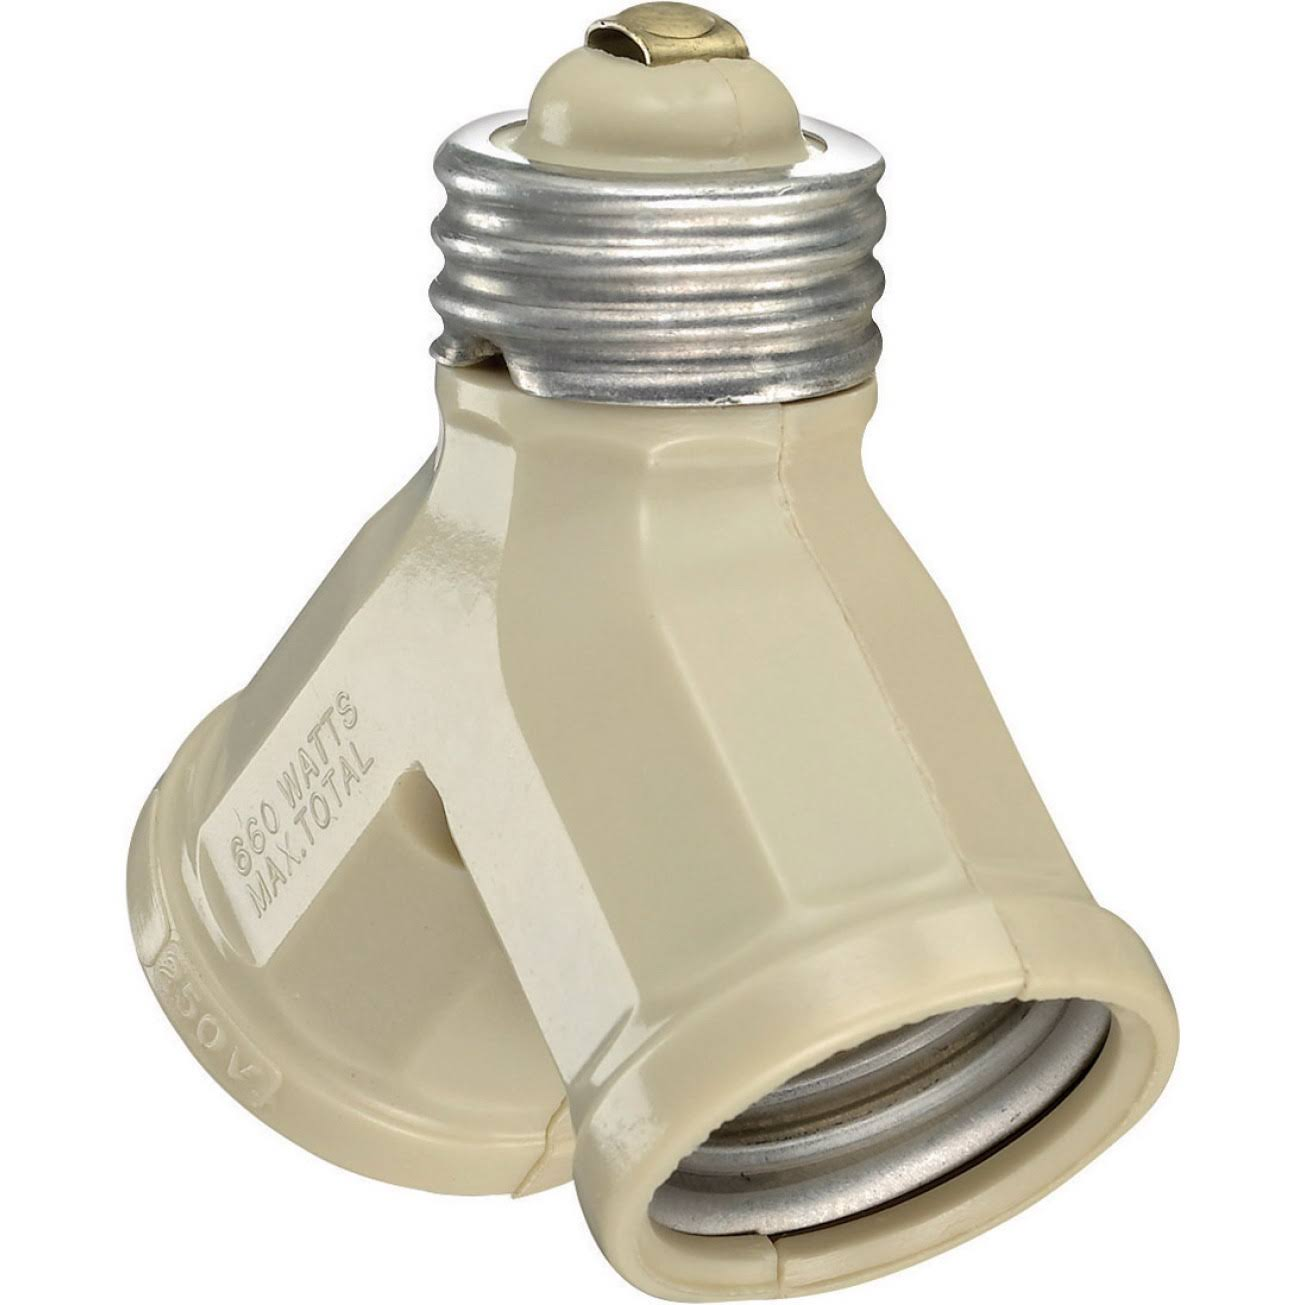 Leviton Twin Light-Socket Adapter - Ivory, 15Amp, 660W